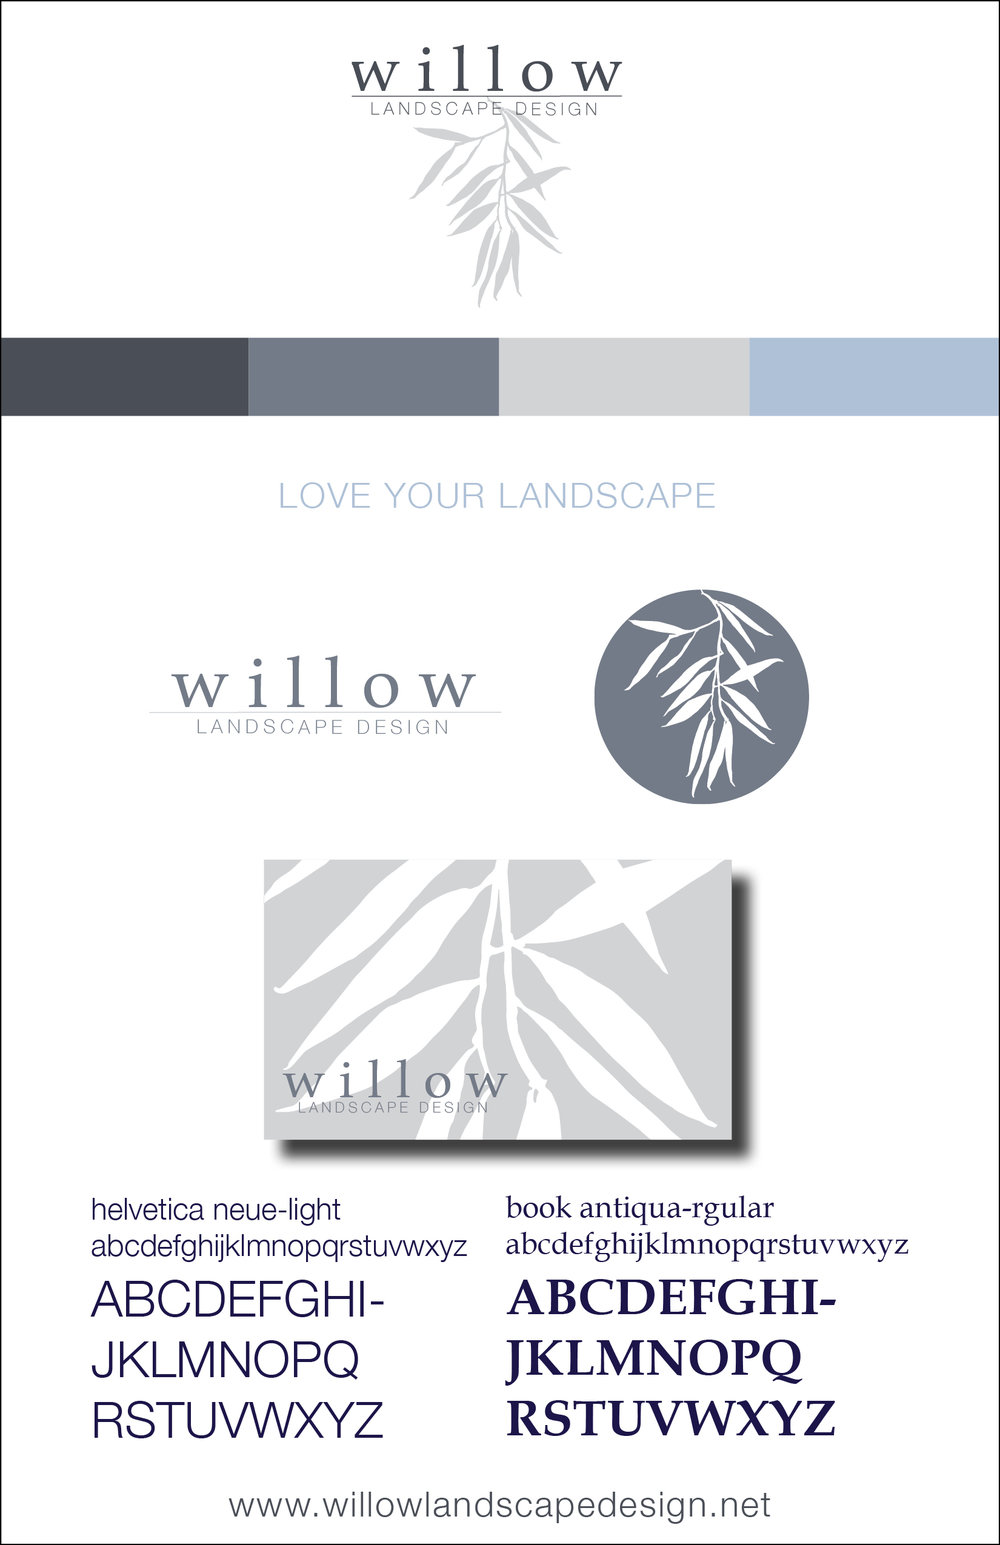 Copy of Willow Landscape Design Branding